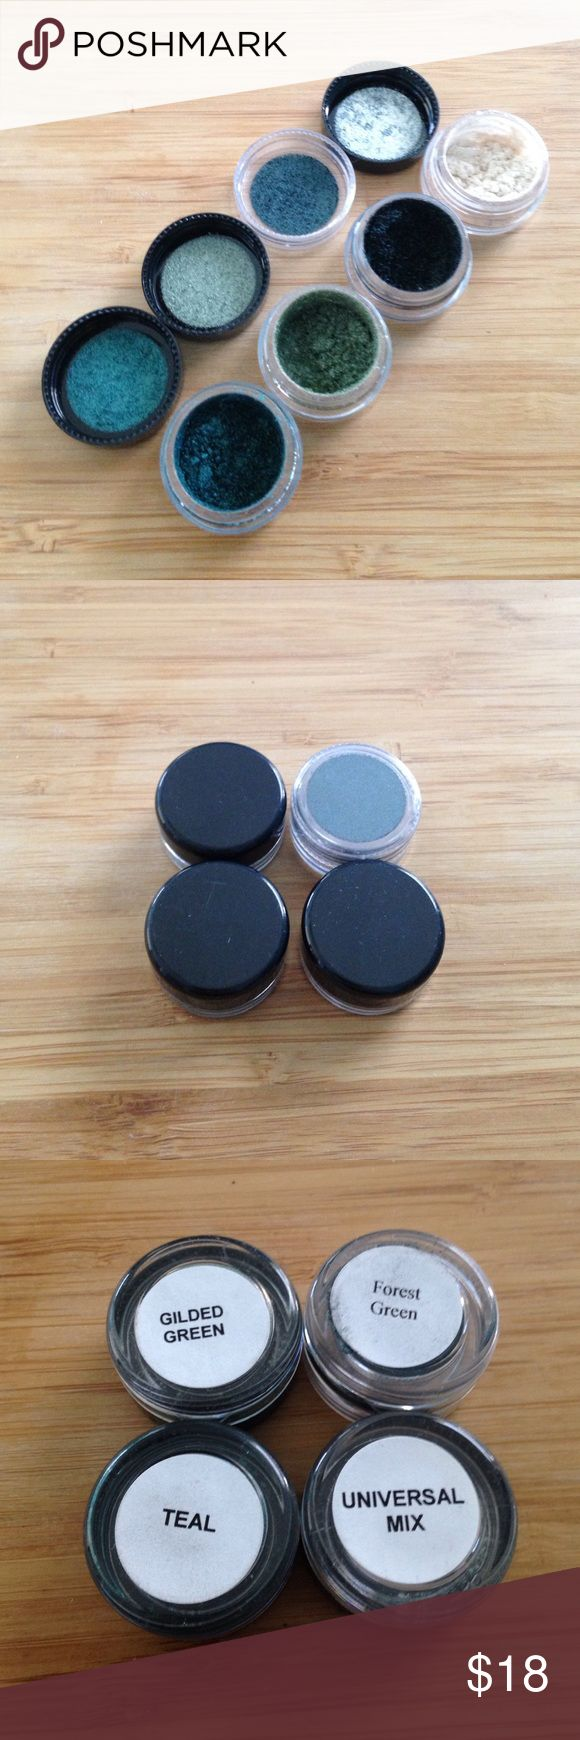 Four MAC Sample Pigments Brand new four MAC Sample Pigments - gilded green, forest green, teal and universal mix. Authentic - never swatched. No trades. Free gift with purchase. Join us to support families in need through our Poshmark closet!!!! NWT and lightly used all donated to go the extra mile! MAC Cosmetics Makeup Eyeshadow